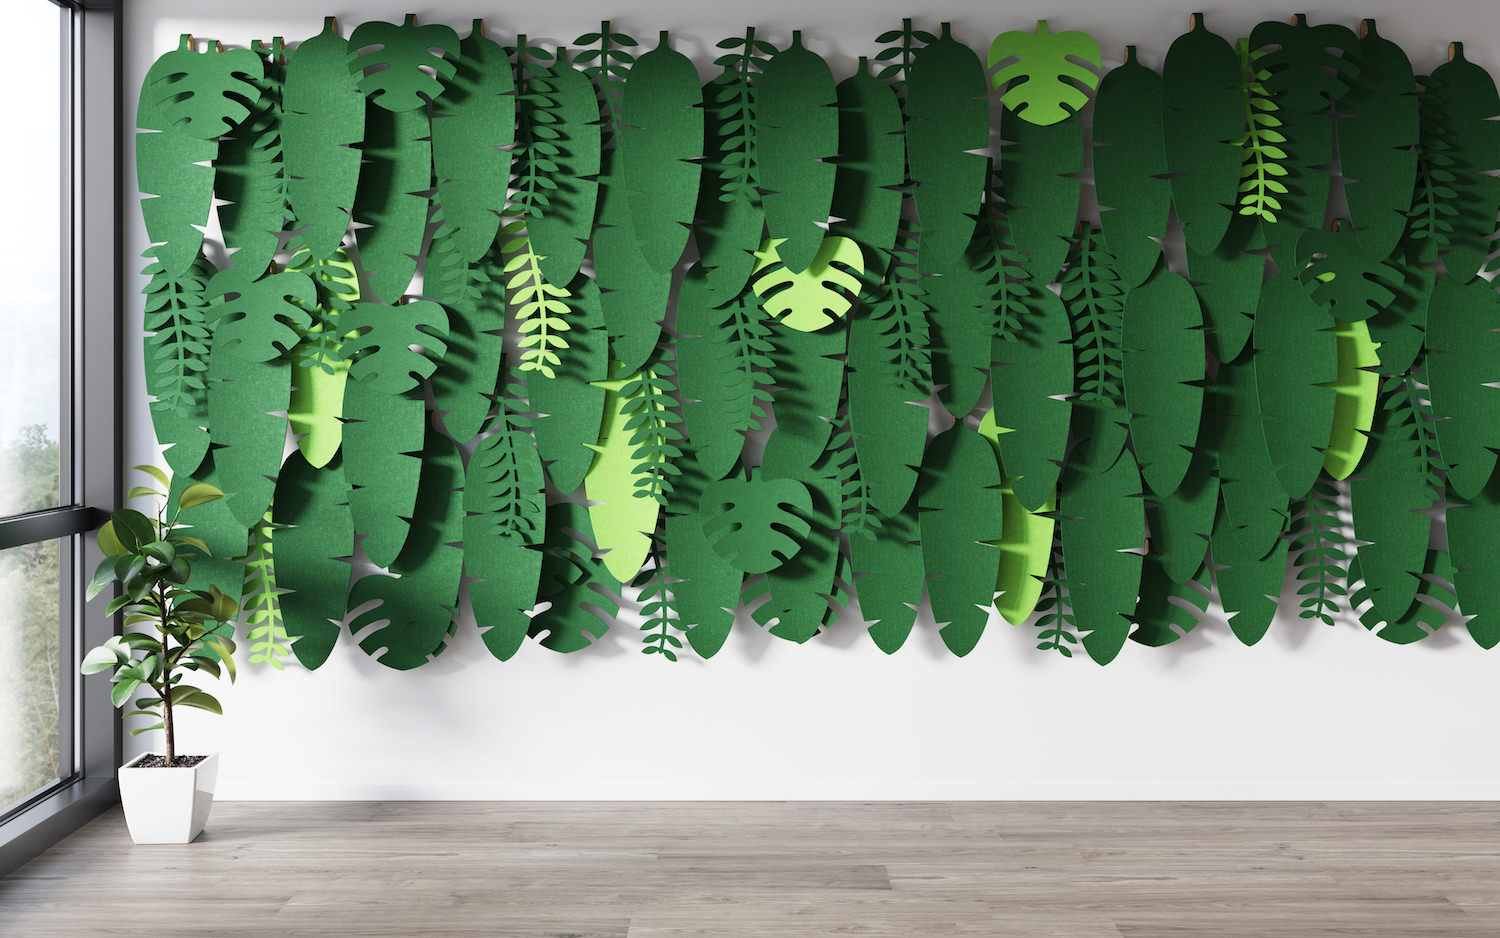 NEUHEIT 2019: JUNGLE WALL - BY GLIMAKRA OF SWEDEN